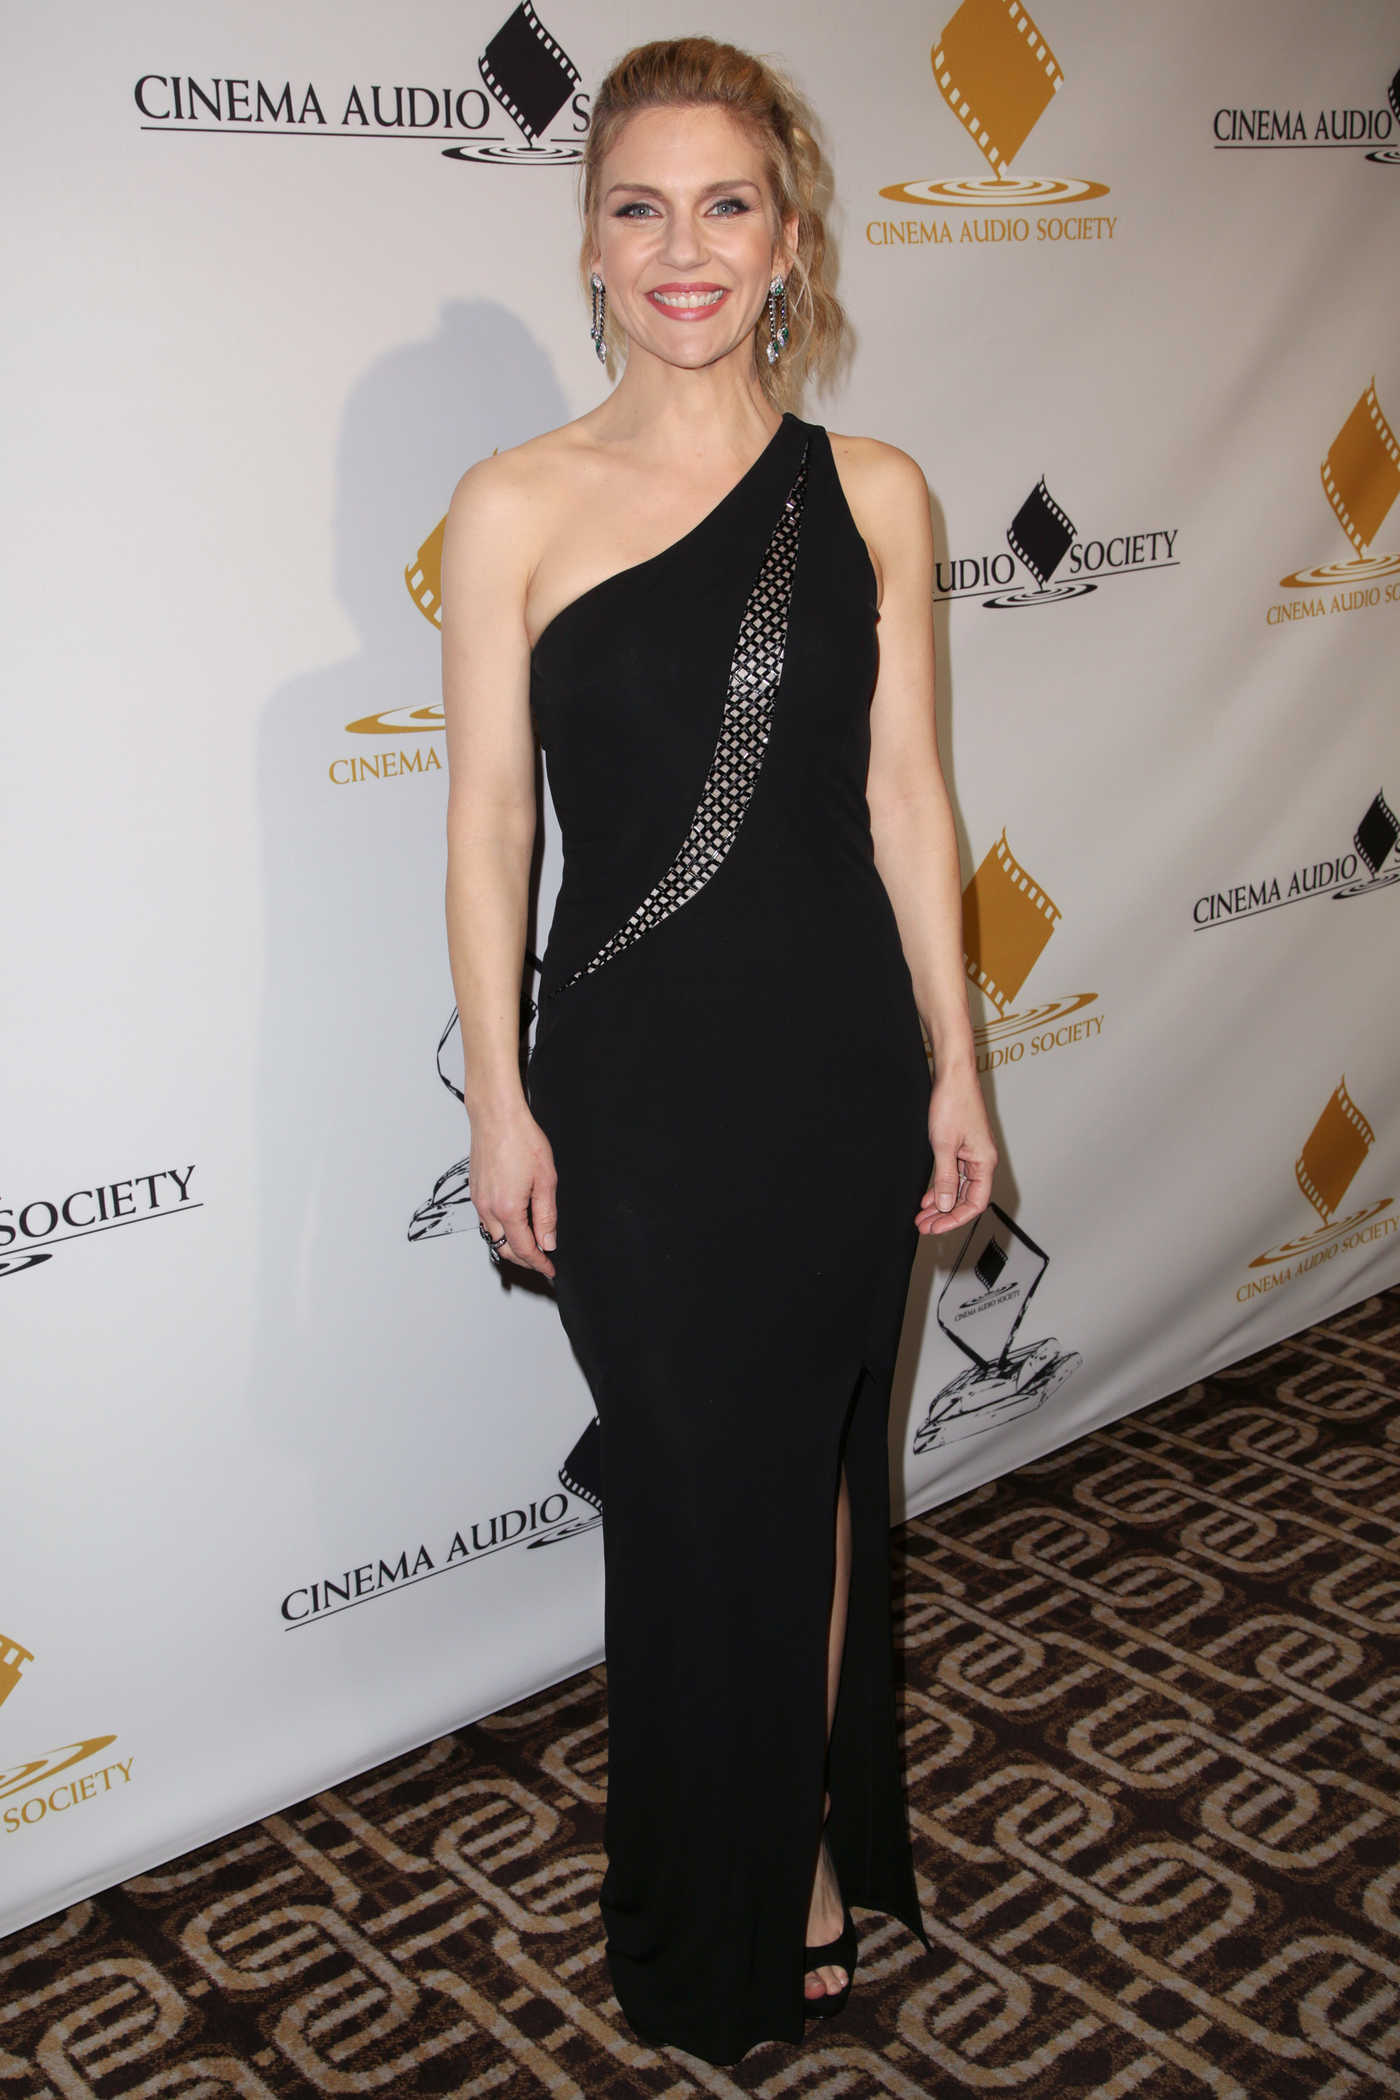 Rhea Seehorn at the Cinema Audio Society Awards in Los Angeles 02/19/2017